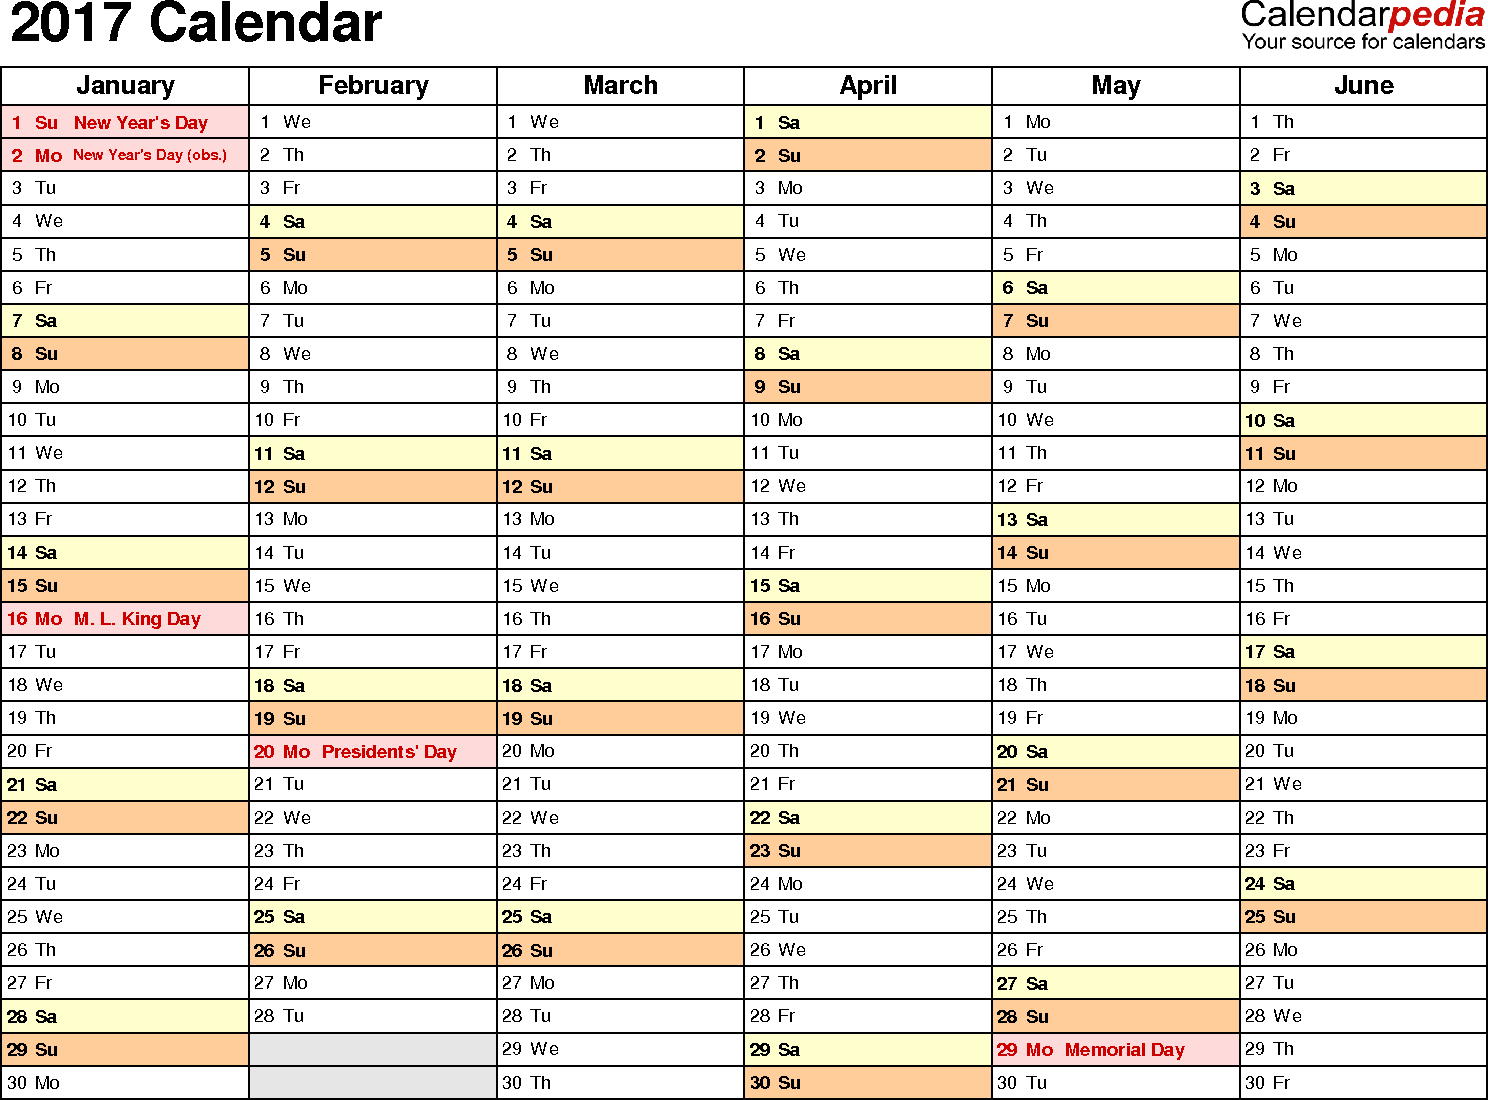 Ediblewildsus  Picturesque  Calendar  Download  Free Printable Excel Templates Xls With Likable Template   Calendar For Excel Months Horizontally  Pages Landscape Orientation With Cool Excel Checkbook Spreadsheet Also Absolute And Relative References In Excel In Addition How To Merge Two Columns Into One In Excel And Excel Merge  Cells As Well As Excel Macro Change Cell Color Additionally T Test Excel Type From Calendarpediacom With Ediblewildsus  Likable  Calendar  Download  Free Printable Excel Templates Xls With Cool Template   Calendar For Excel Months Horizontally  Pages Landscape Orientation And Picturesque Excel Checkbook Spreadsheet Also Absolute And Relative References In Excel In Addition How To Merge Two Columns Into One In Excel From Calendarpediacom